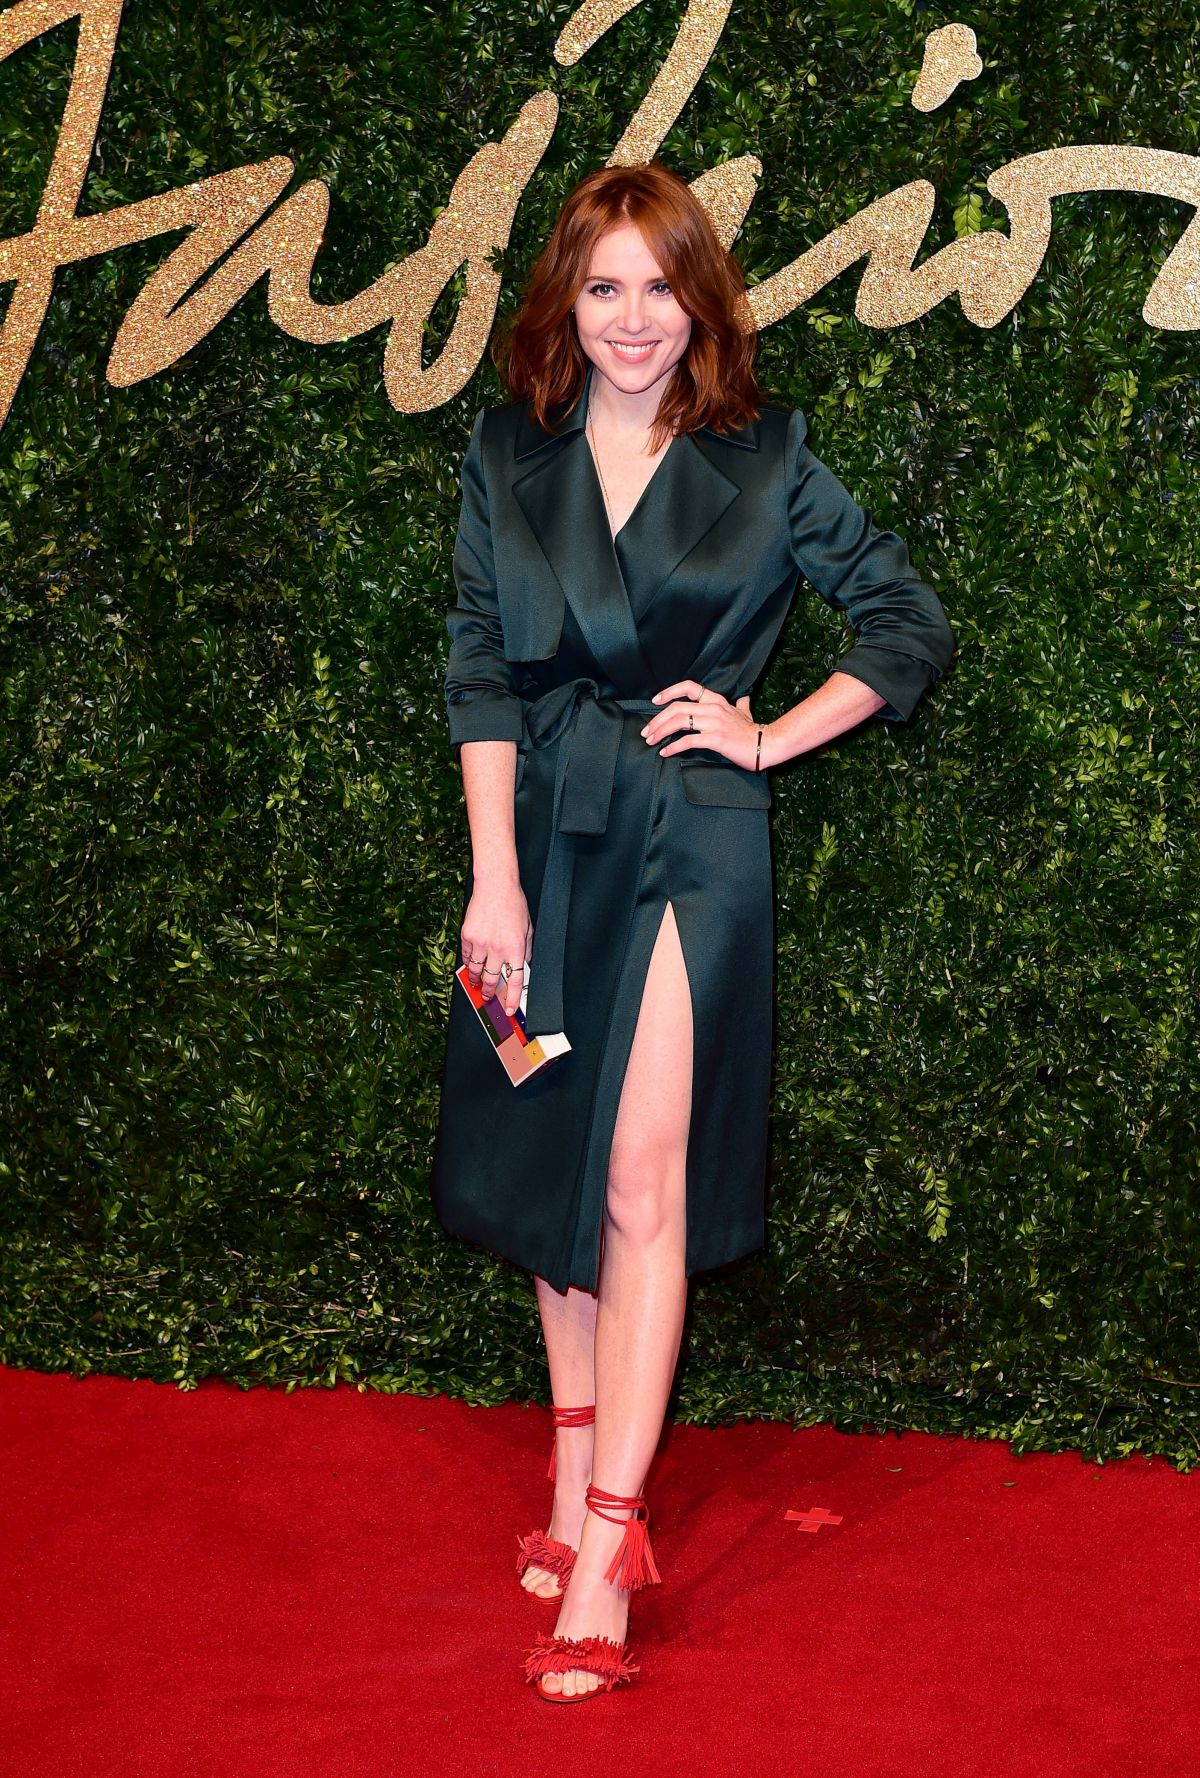 ANGELA SCANLON at 2015 British Fashion Awards in London 11/23/2015